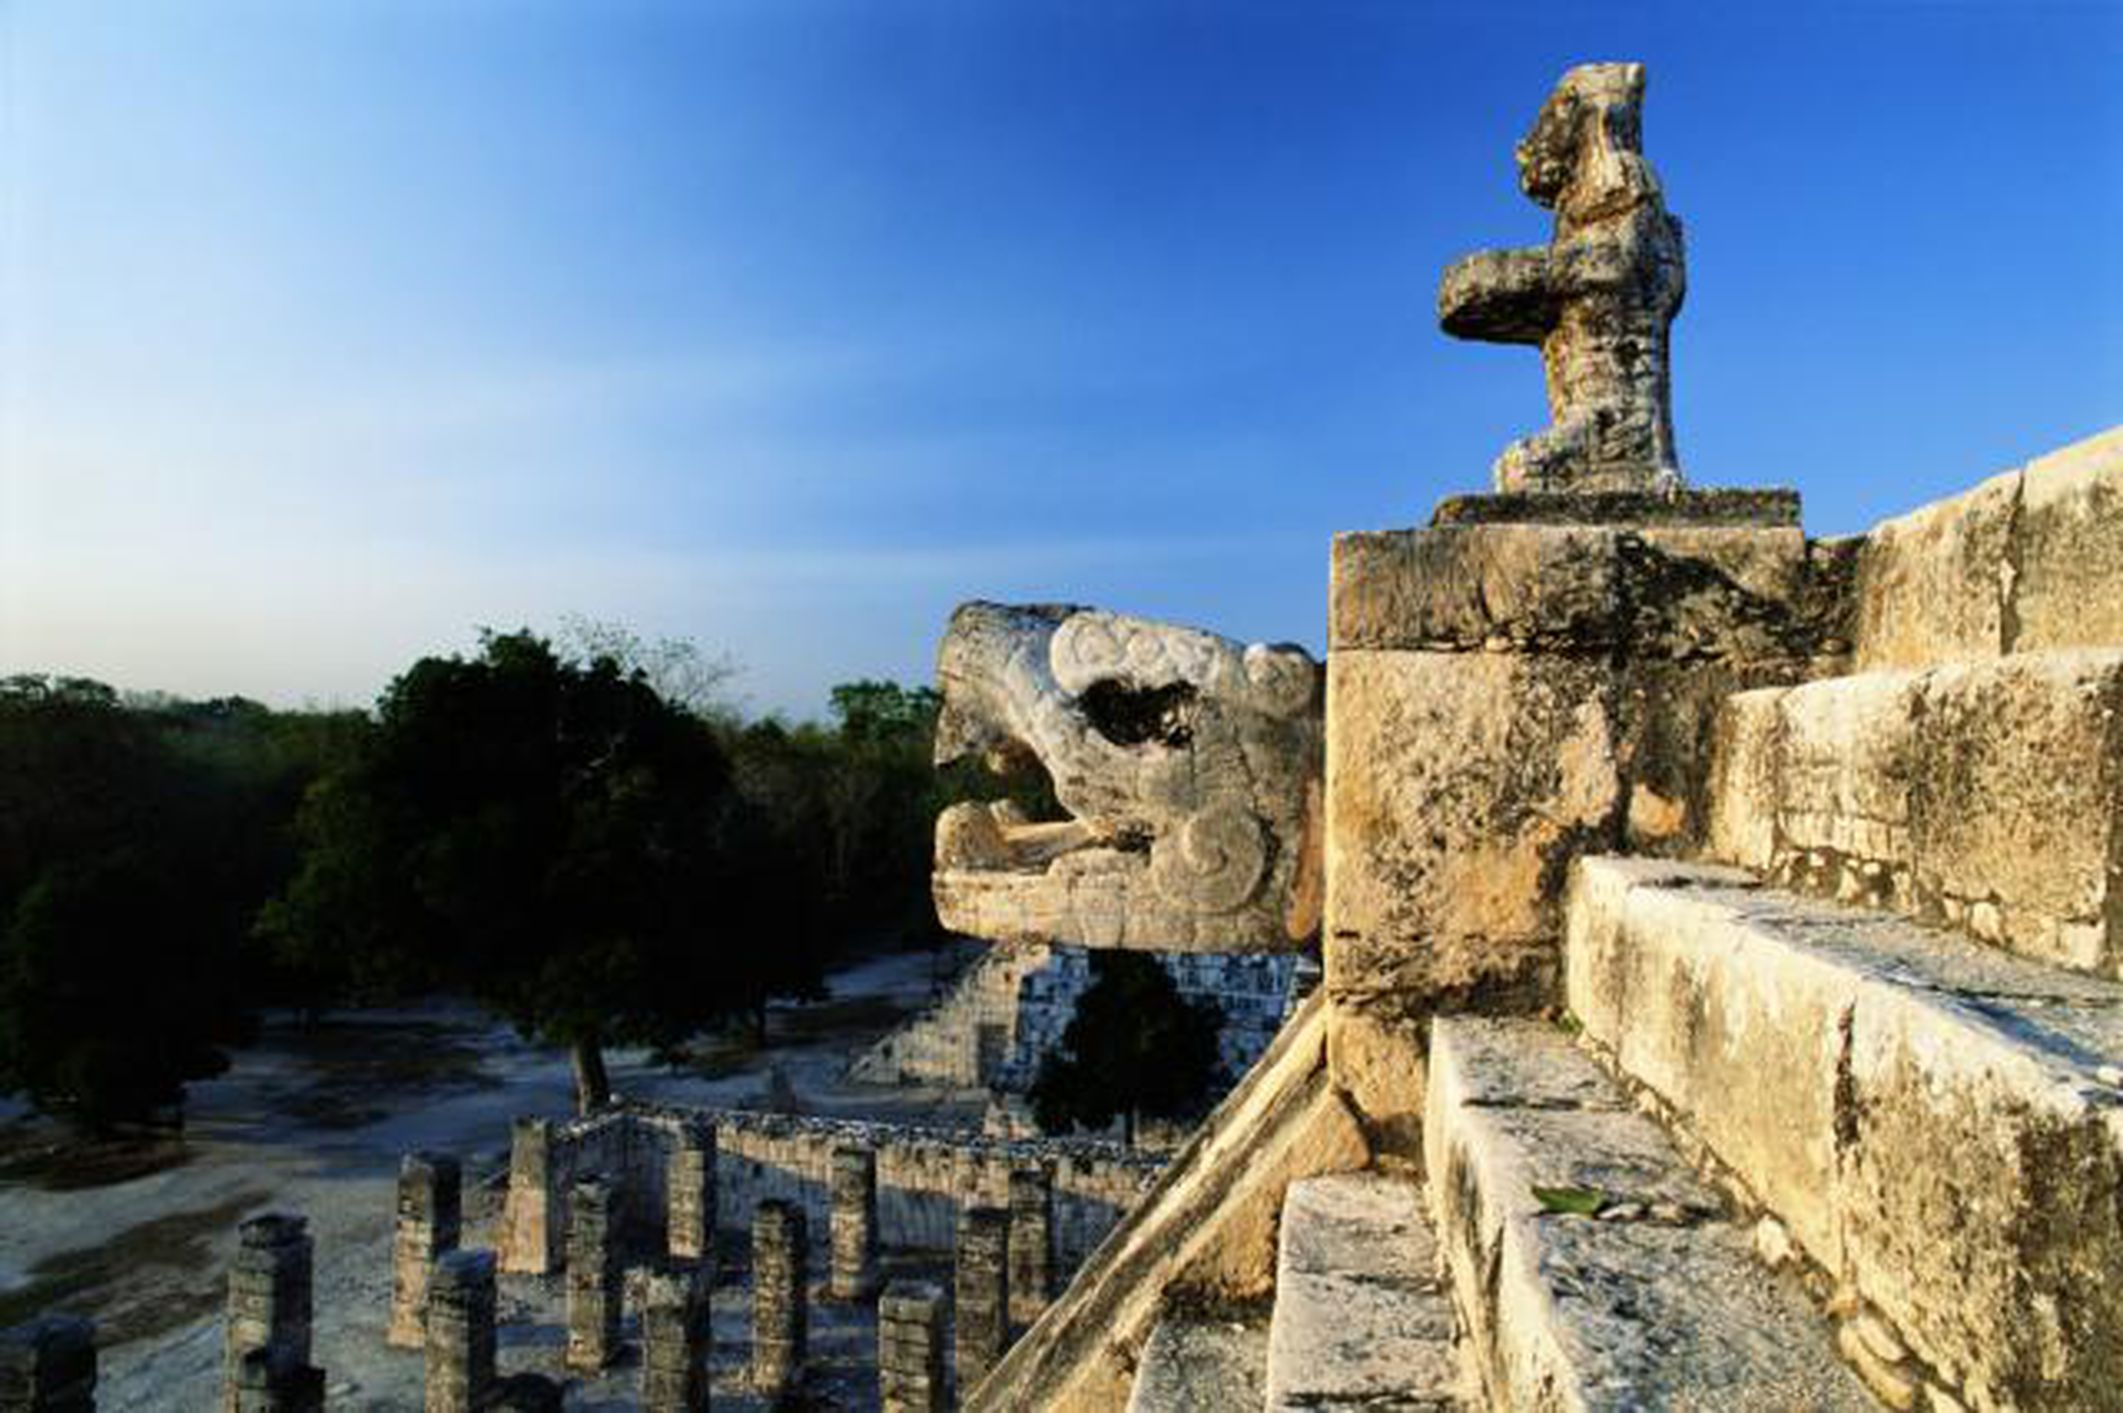 ancient civilization All customers get free shipping on orders over $25 shipped by amazon show results for movies & tv.